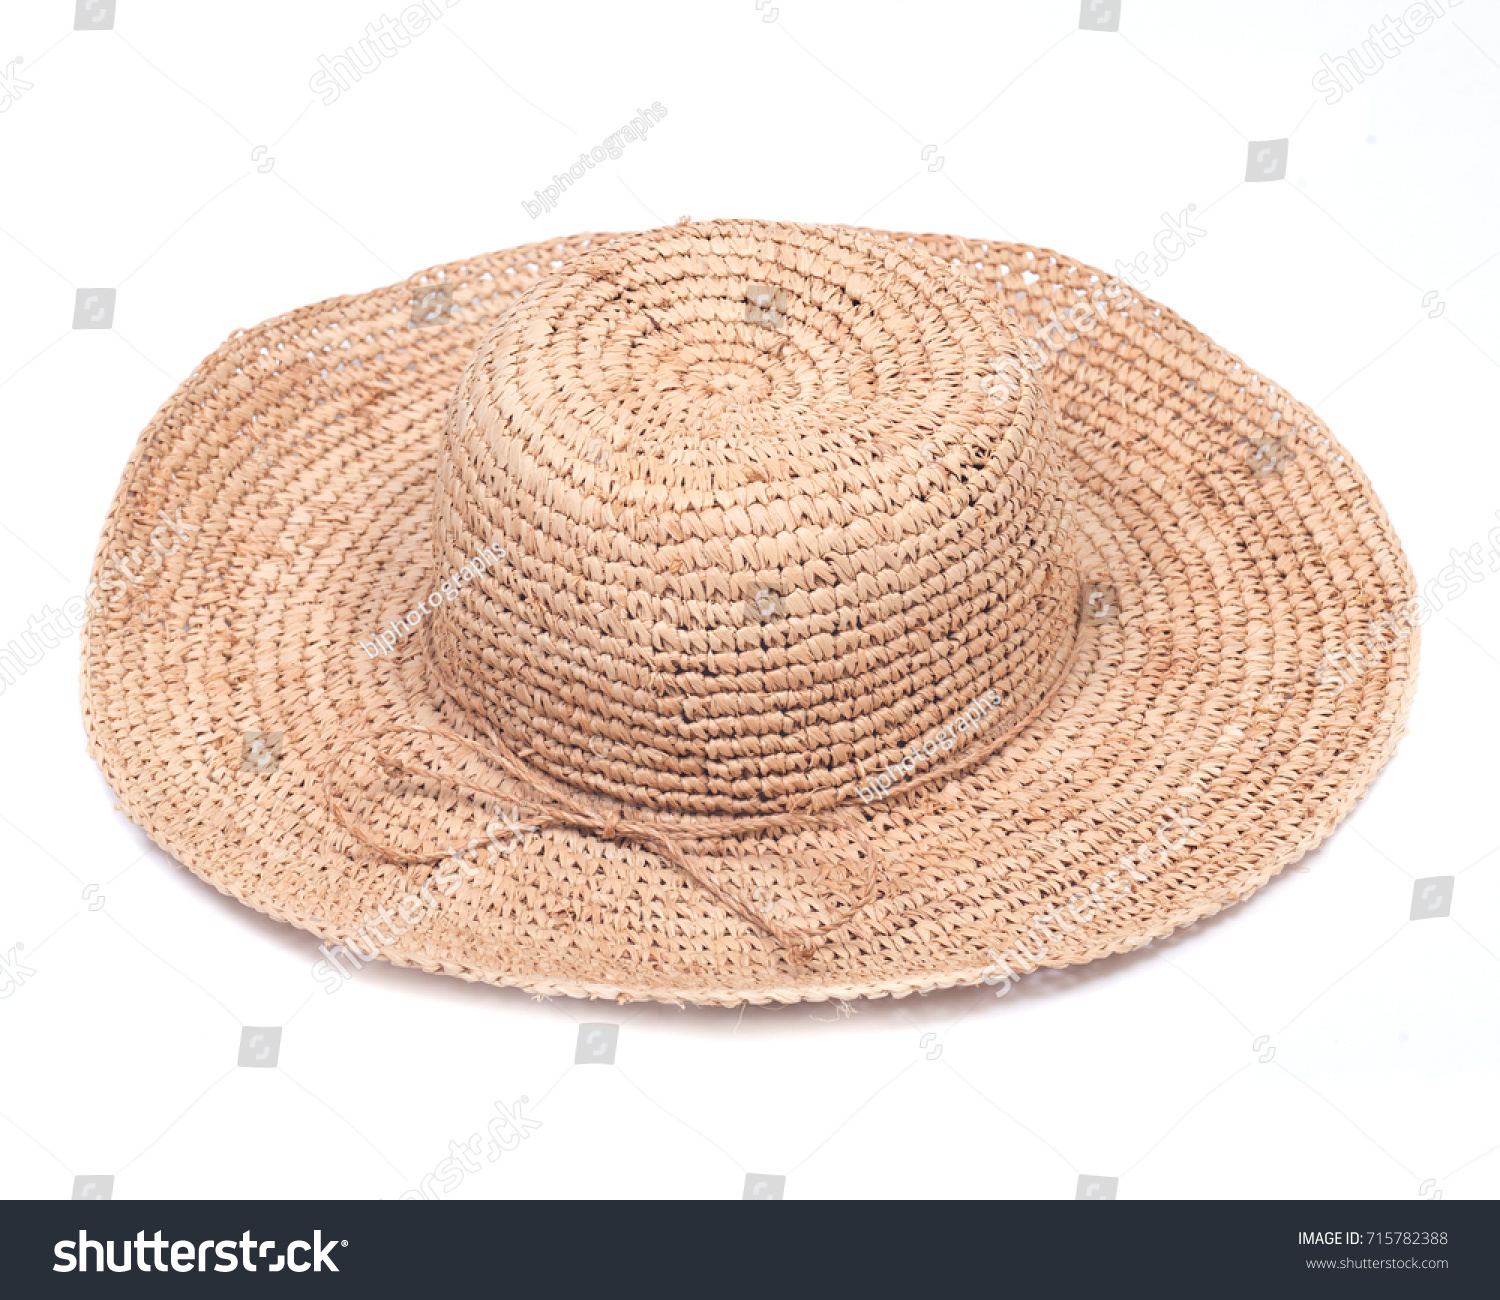 wicker yellow mat from rice straw. oval shape on a white background ... 739eb7c1cb06